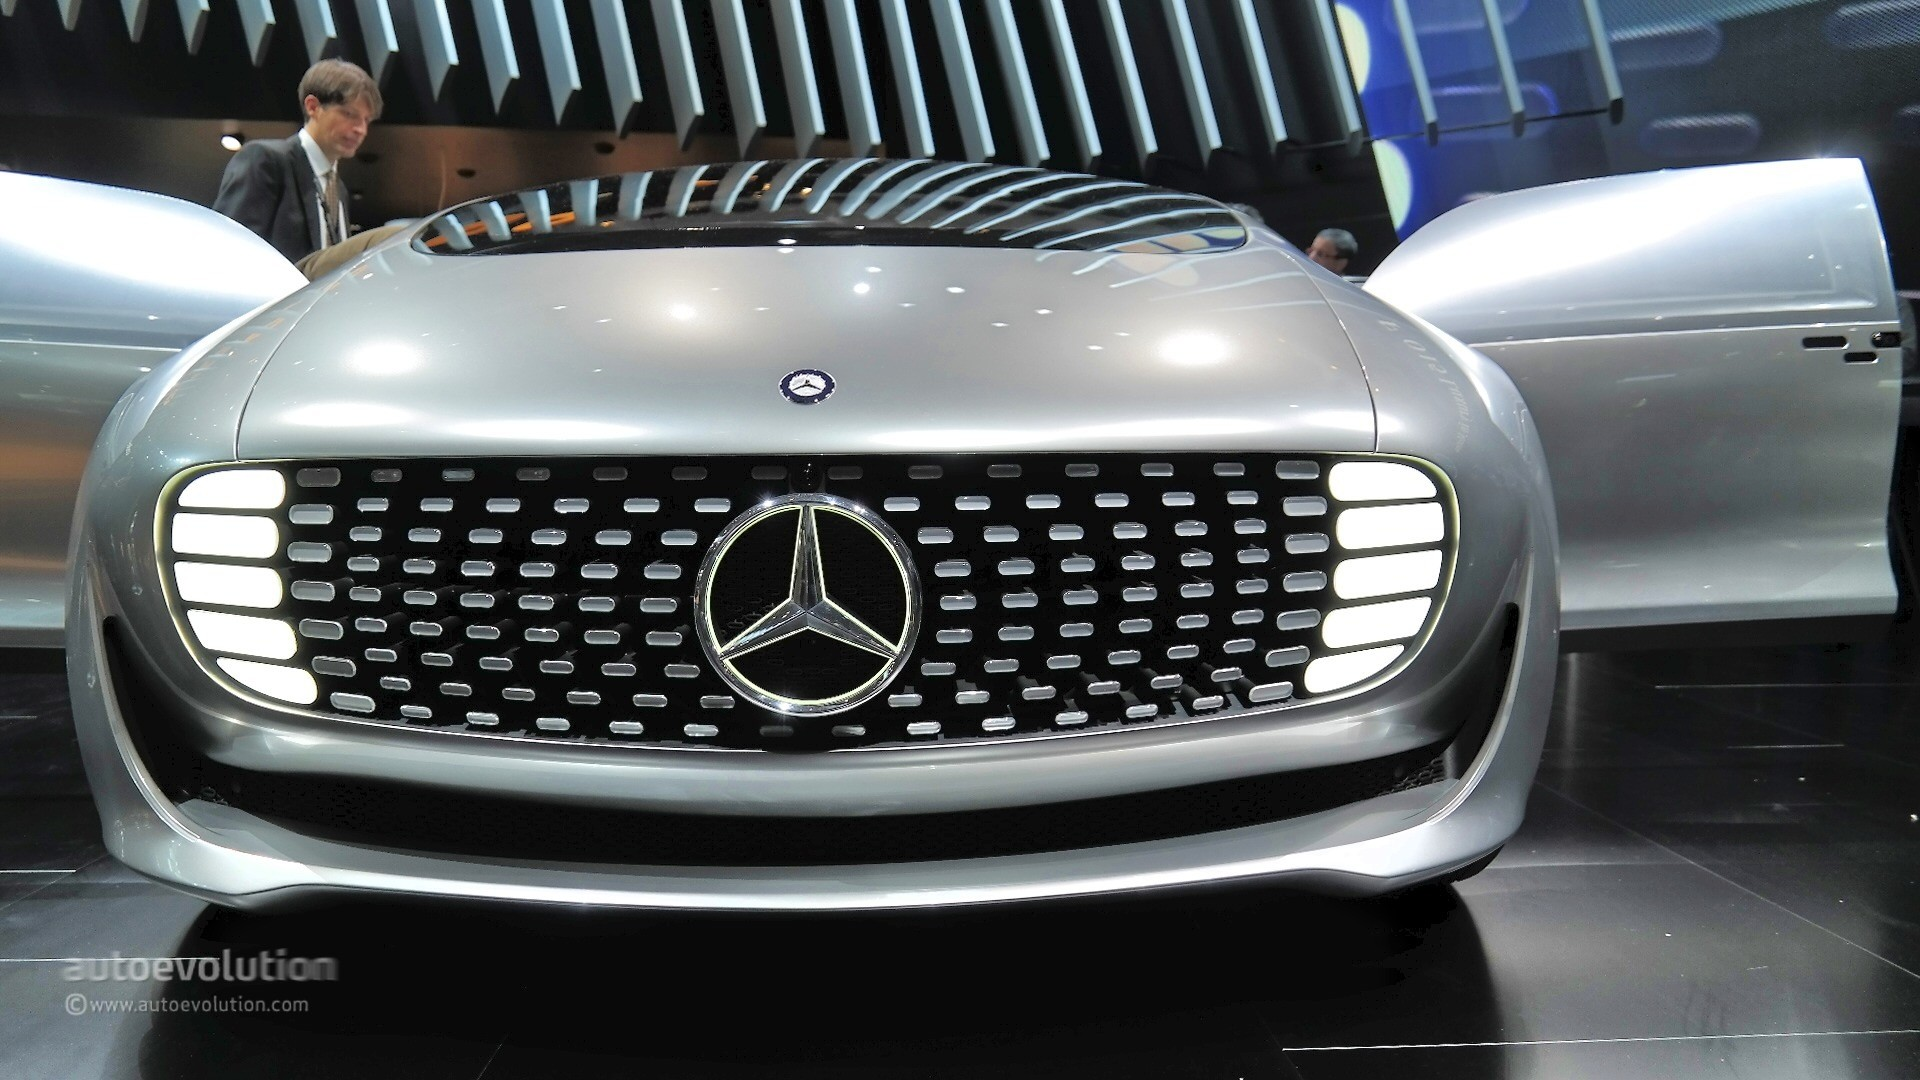 Mercedes Claims Cars Wont Change Drastically In Design Due To New Technology on mercedes benz f 015